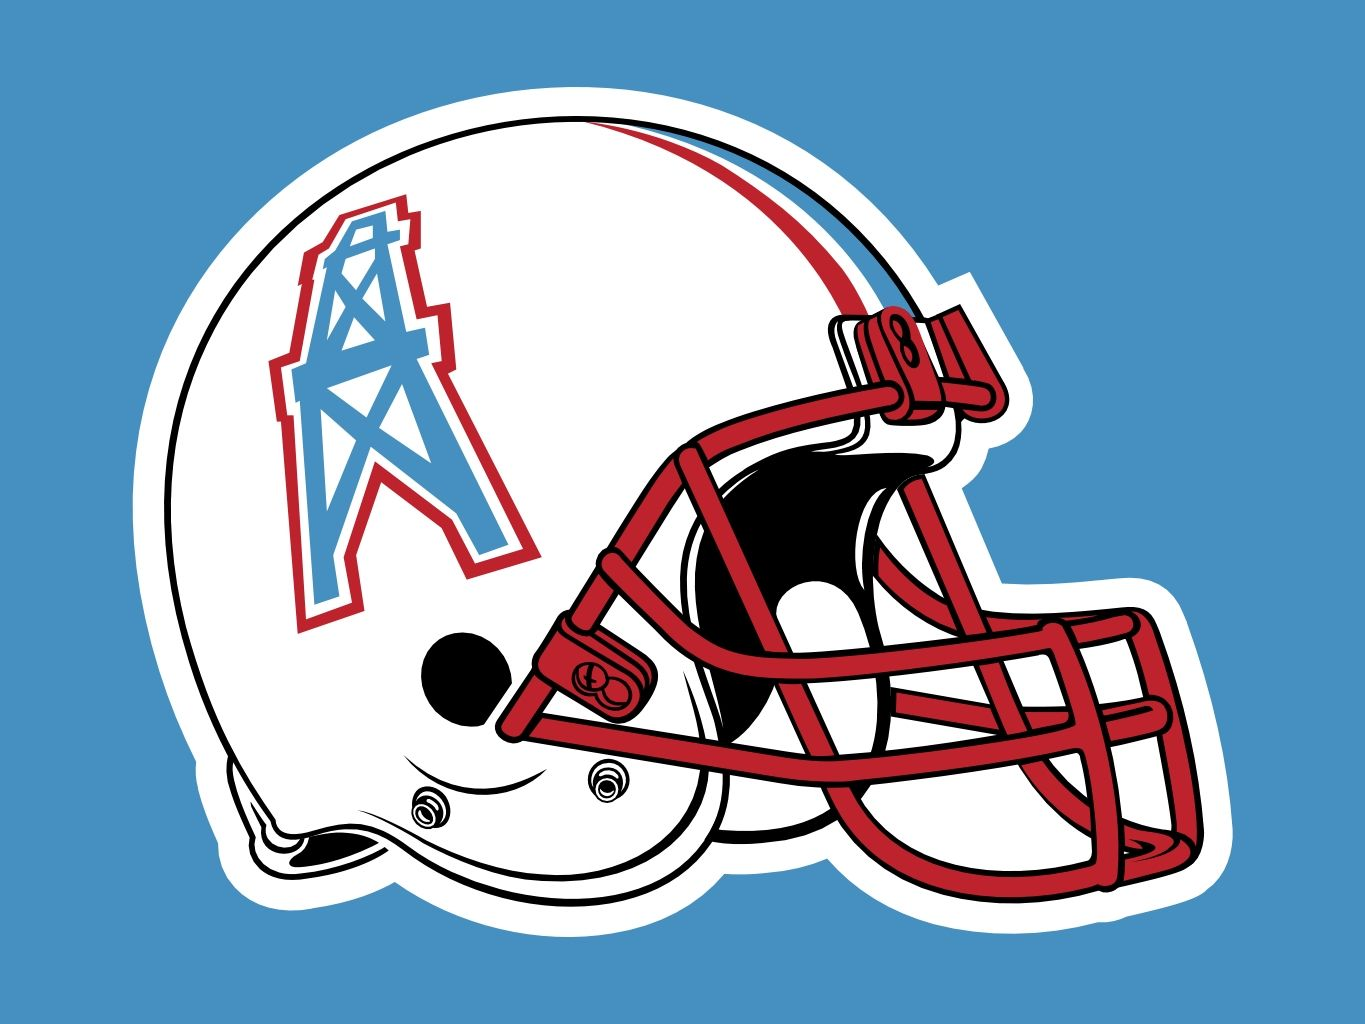 Pics photos houston texans logo chris creamer s sports - Houston Oilers Logo On Chris Creamer S Sports Logos Page Sportslogos A Virtual Museum Of Sports Logos Uniforms And Historical Items